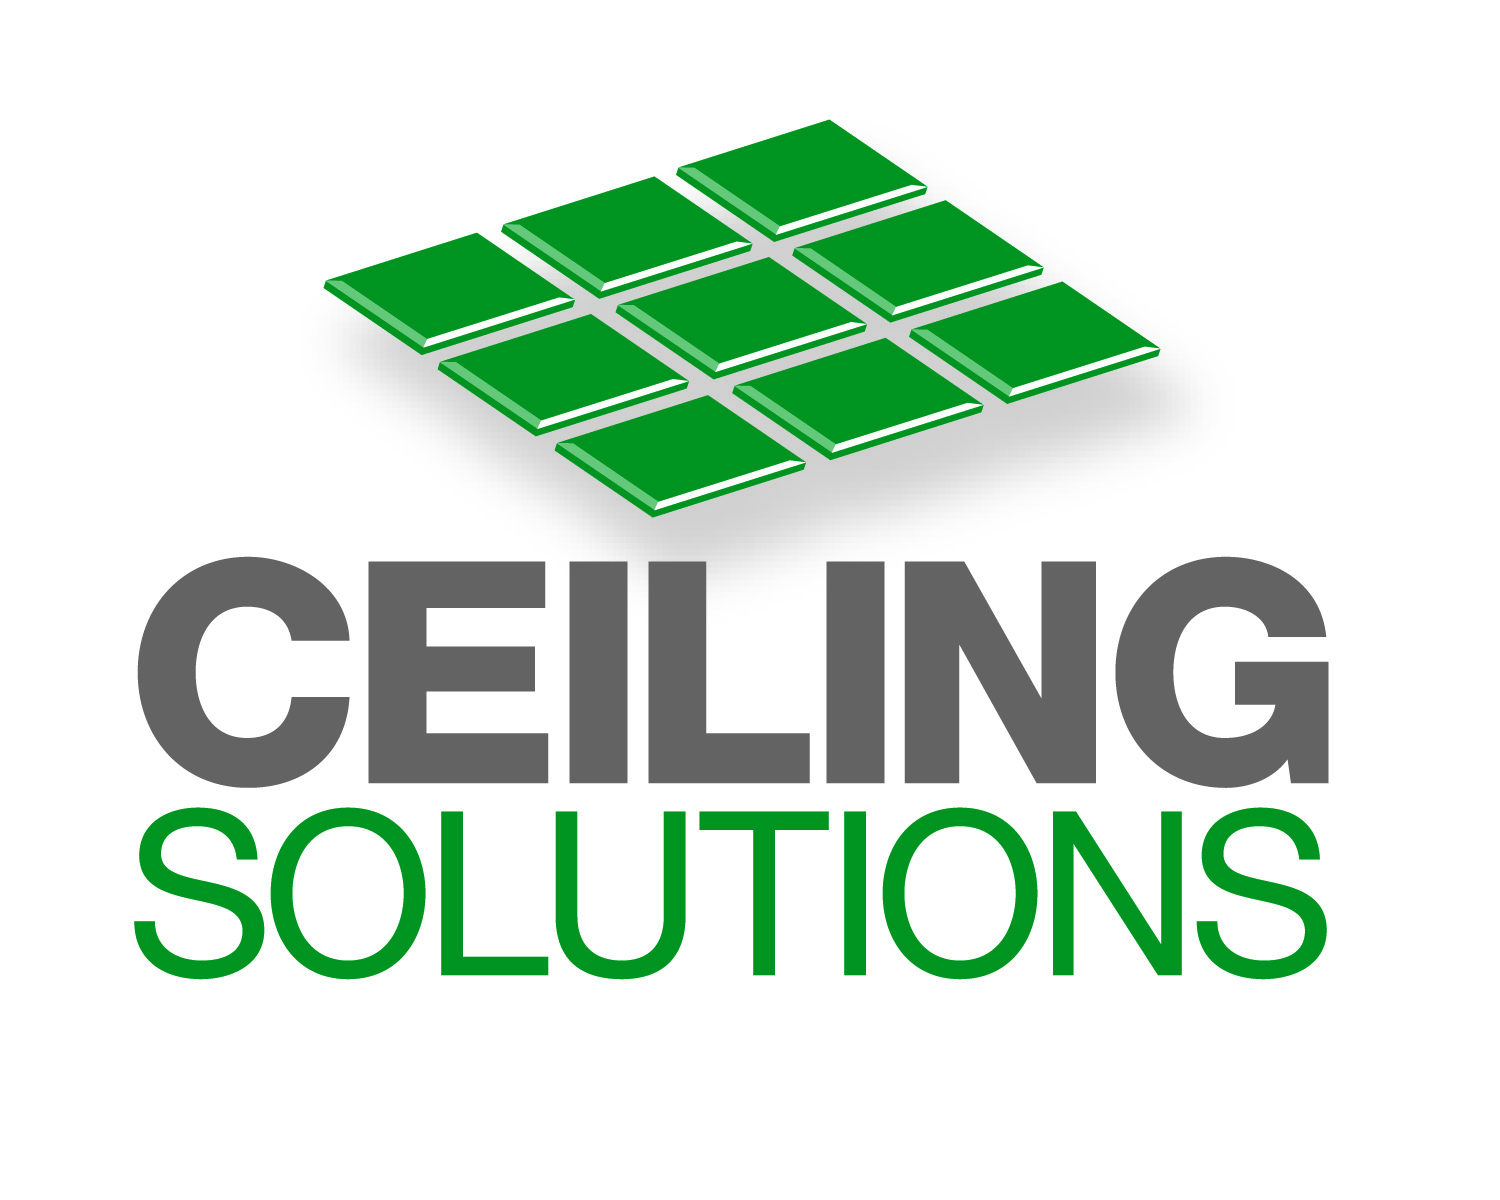 Ceiling Solutions